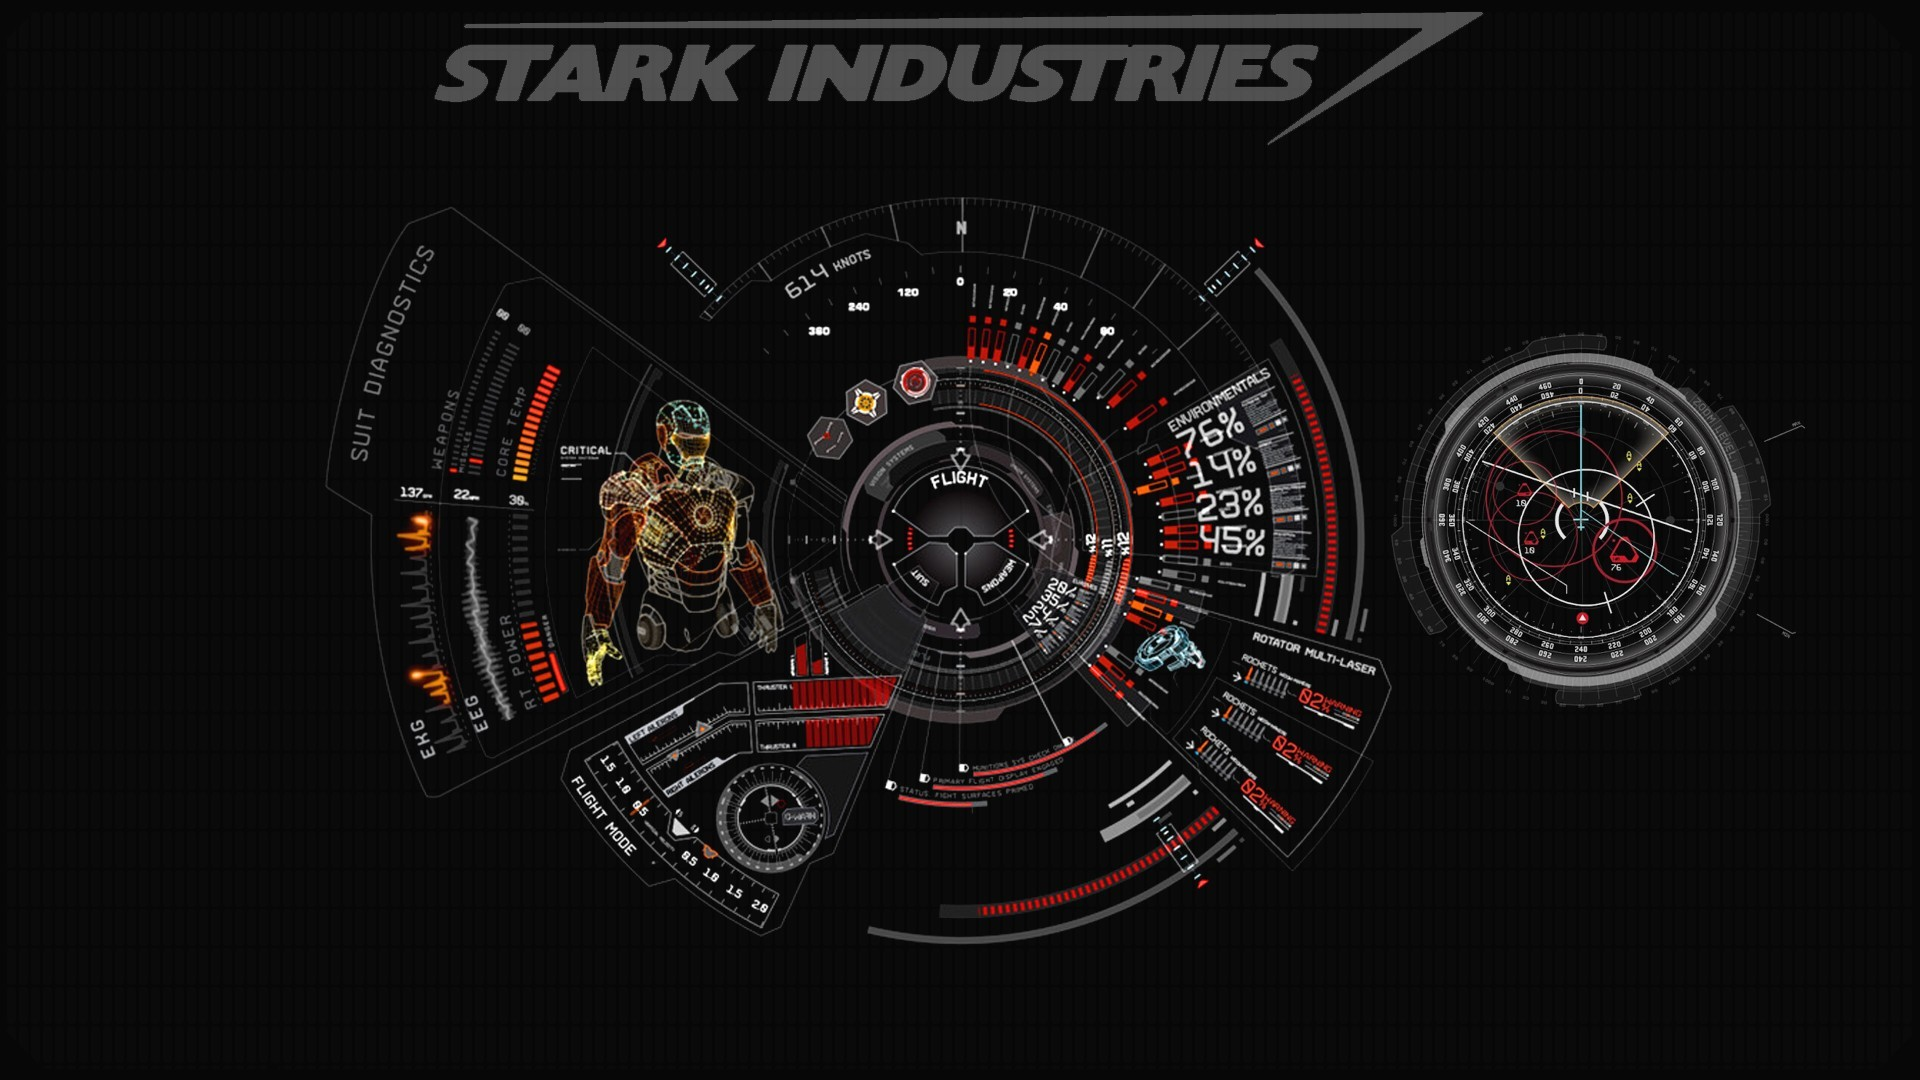 Iron man red stark industries wallpaper | AllWallpaper.in #16195 ...